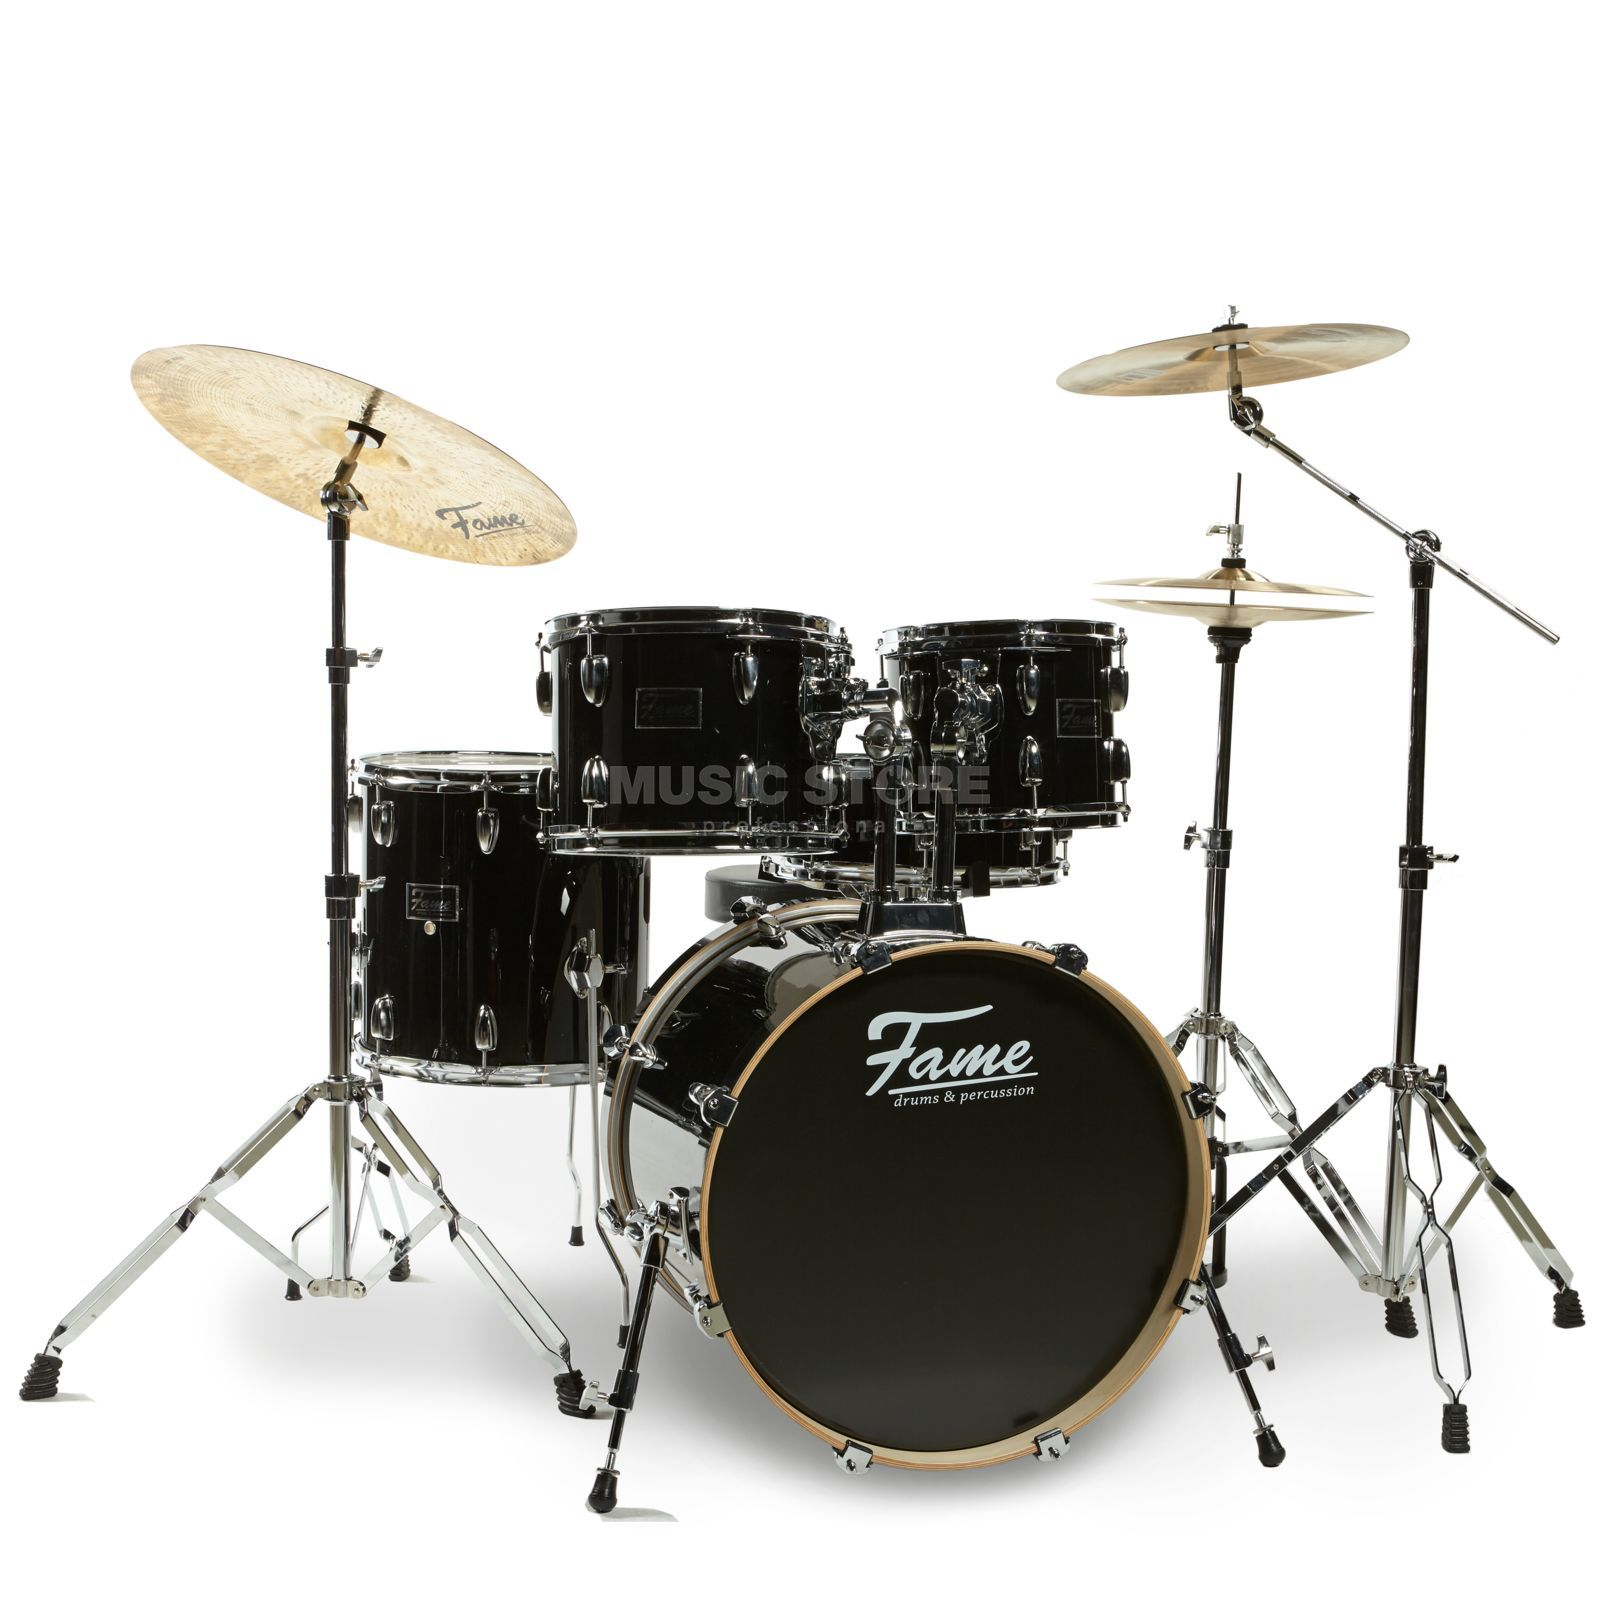 Fame Blaze Standard Set 5221, #Black Product Image